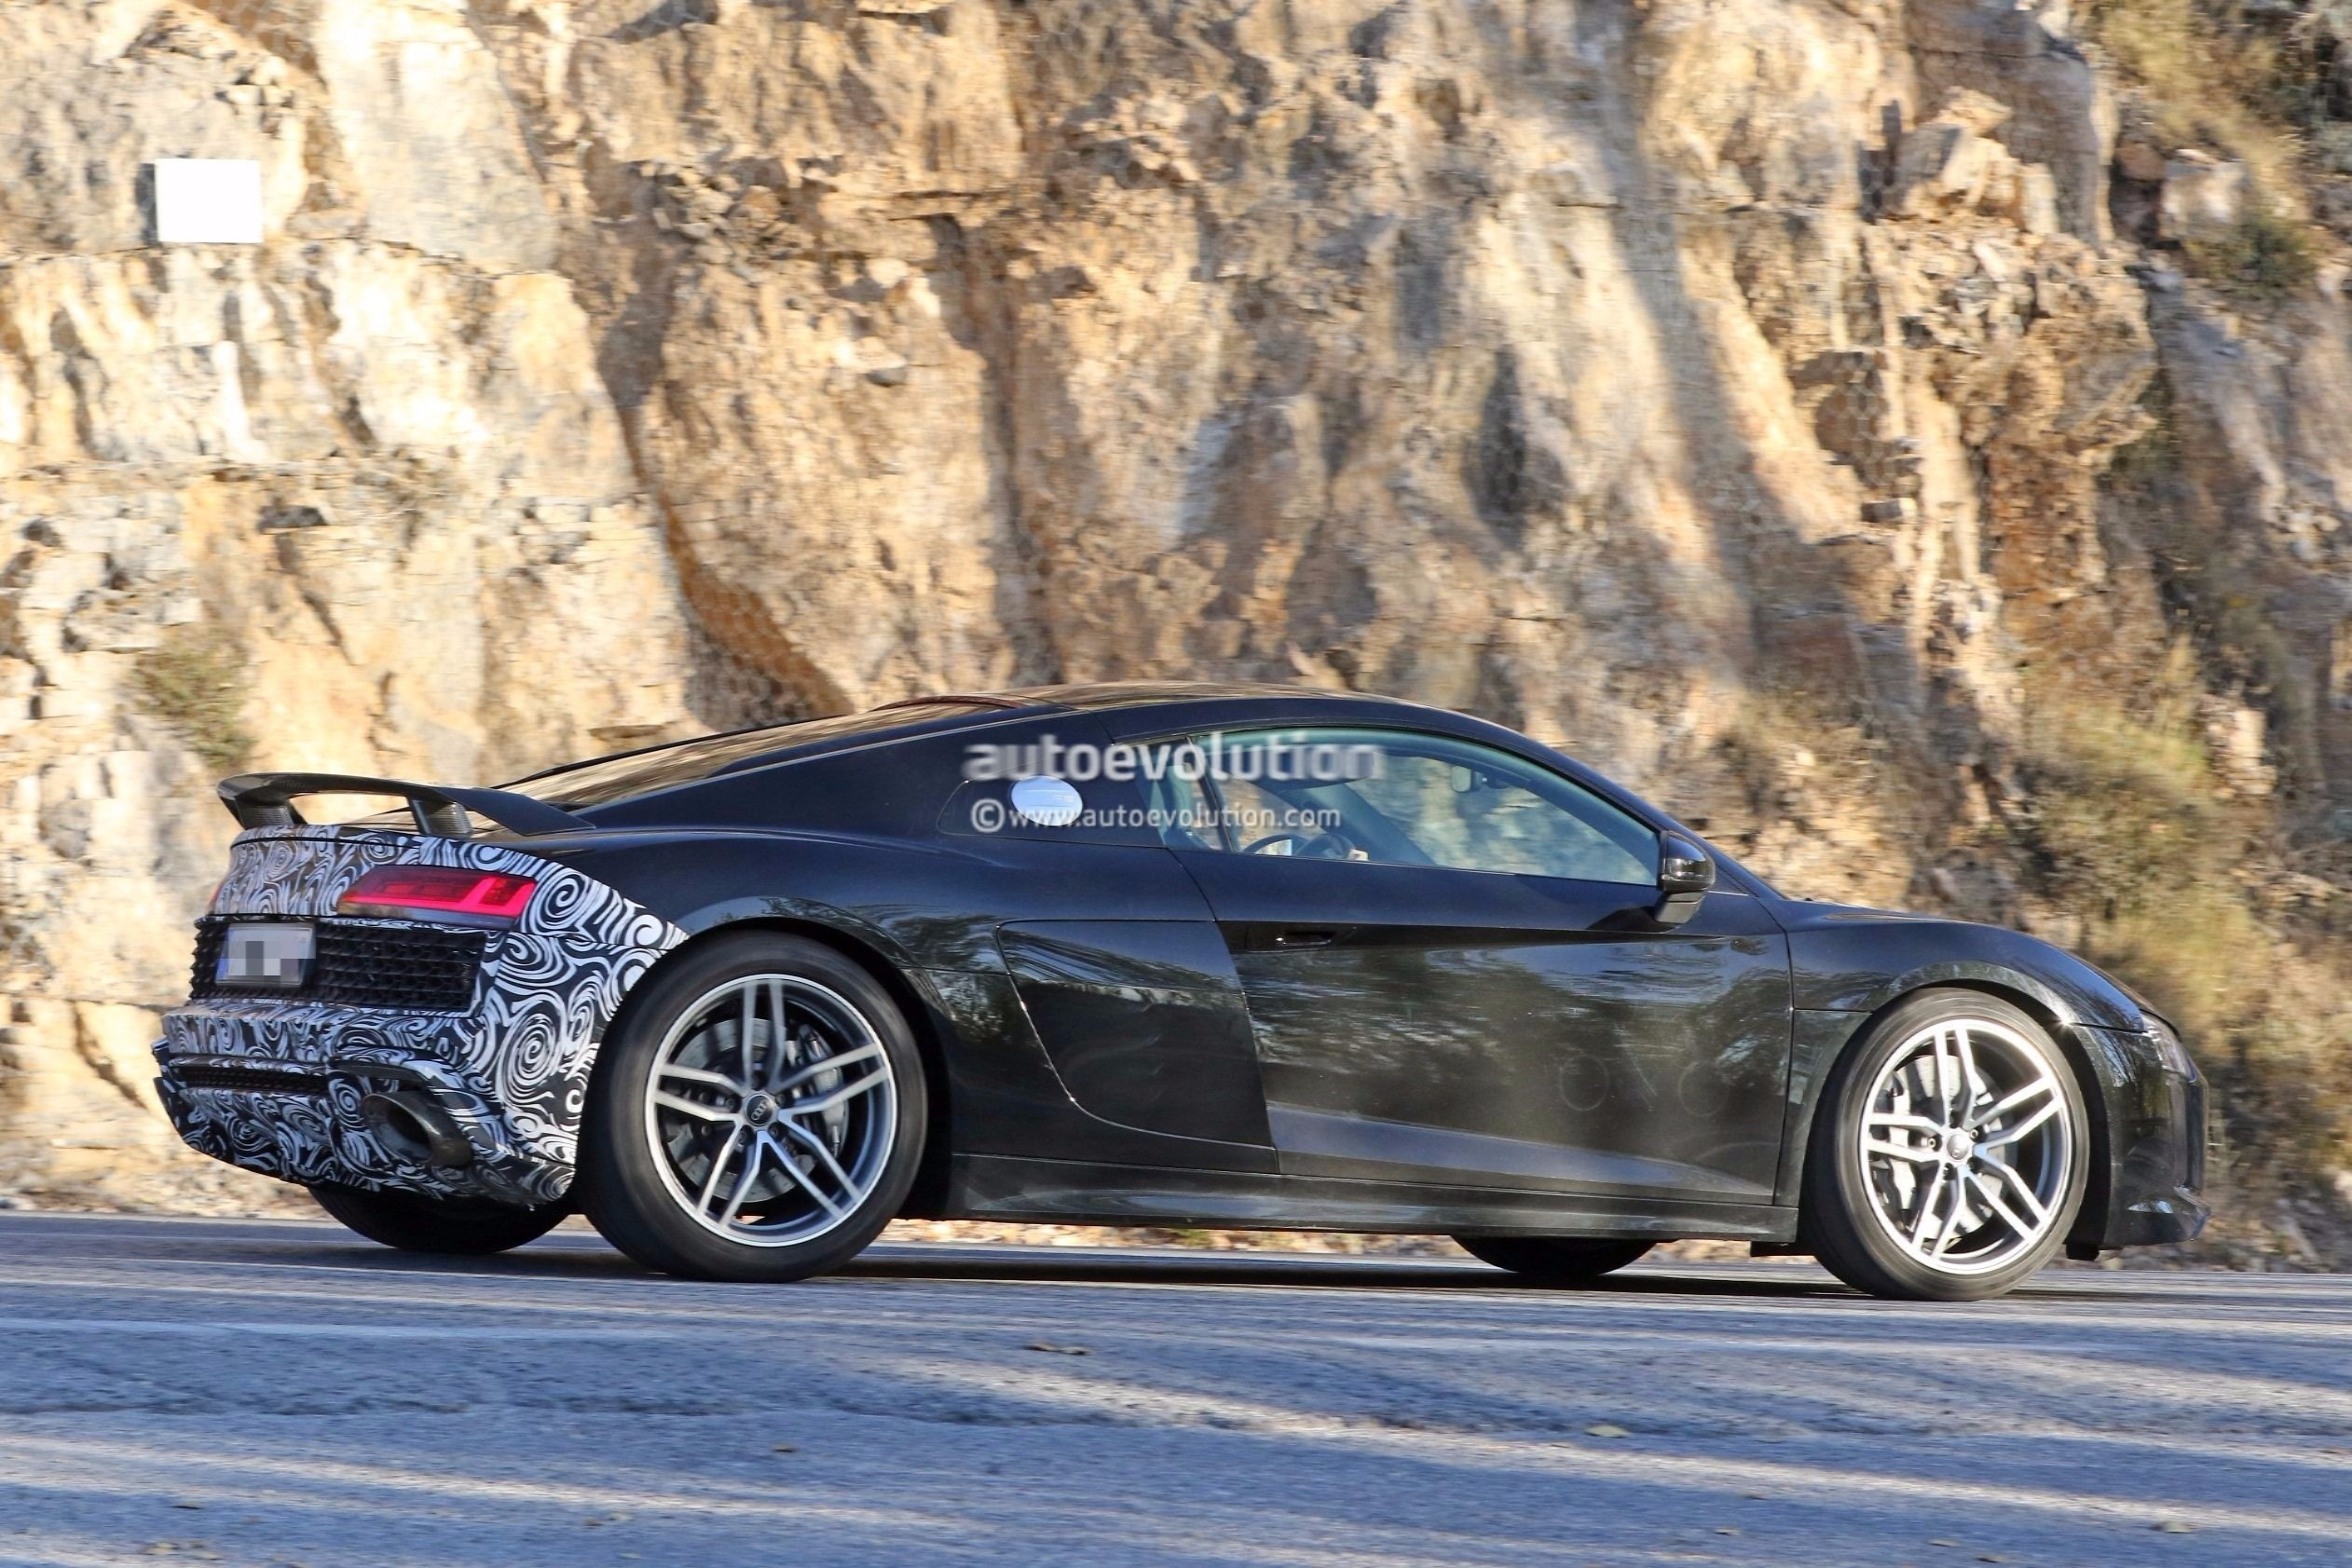 spyshots 2019 audi r8 gt flaunts two huge oval exhaust pipes autoevolution. Black Bedroom Furniture Sets. Home Design Ideas